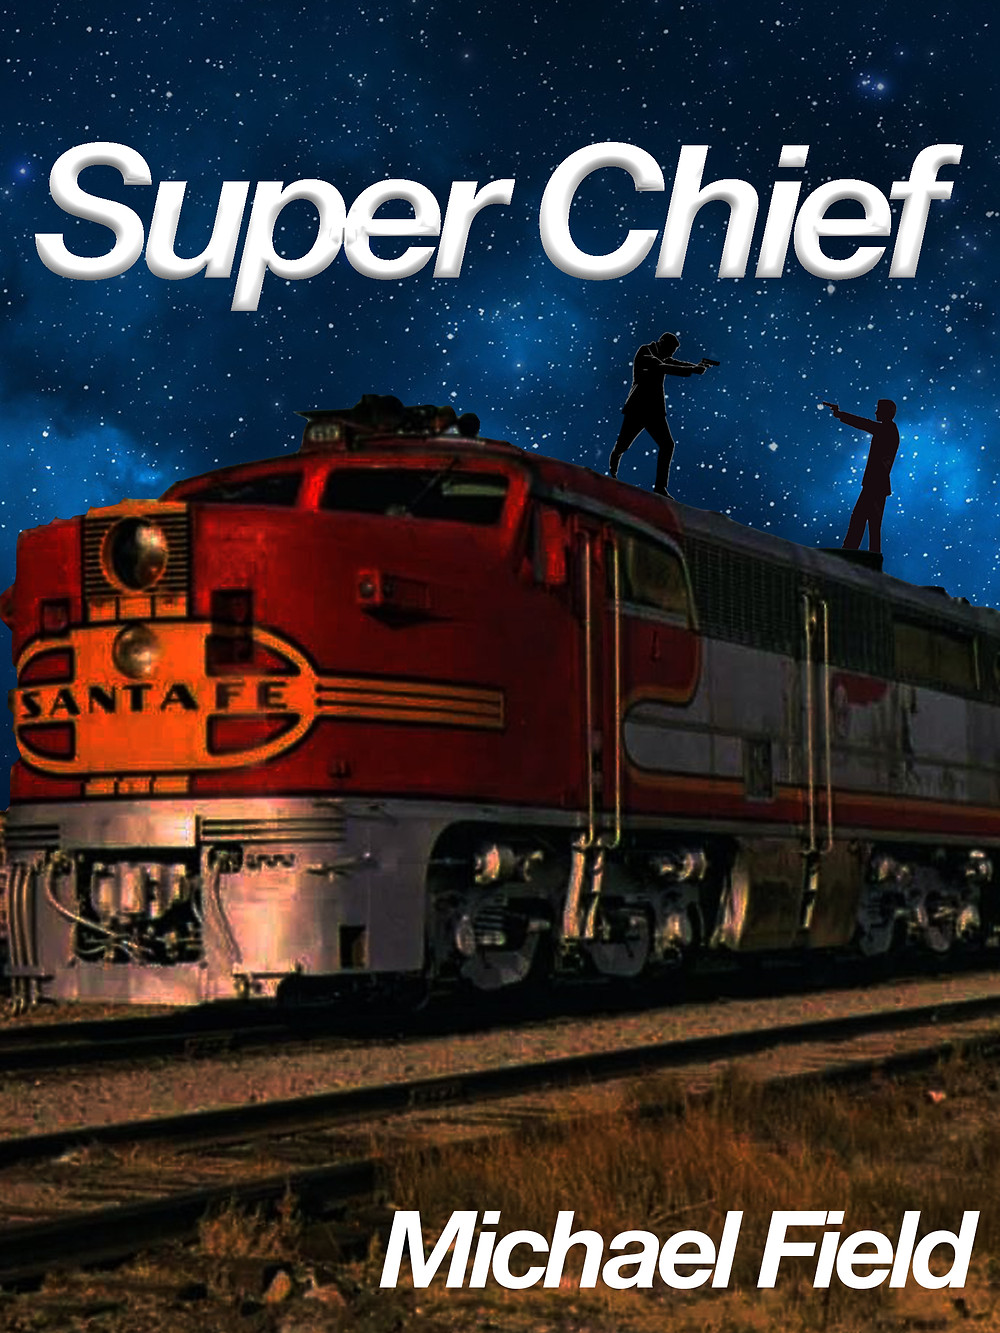 Poster for Super Chief script